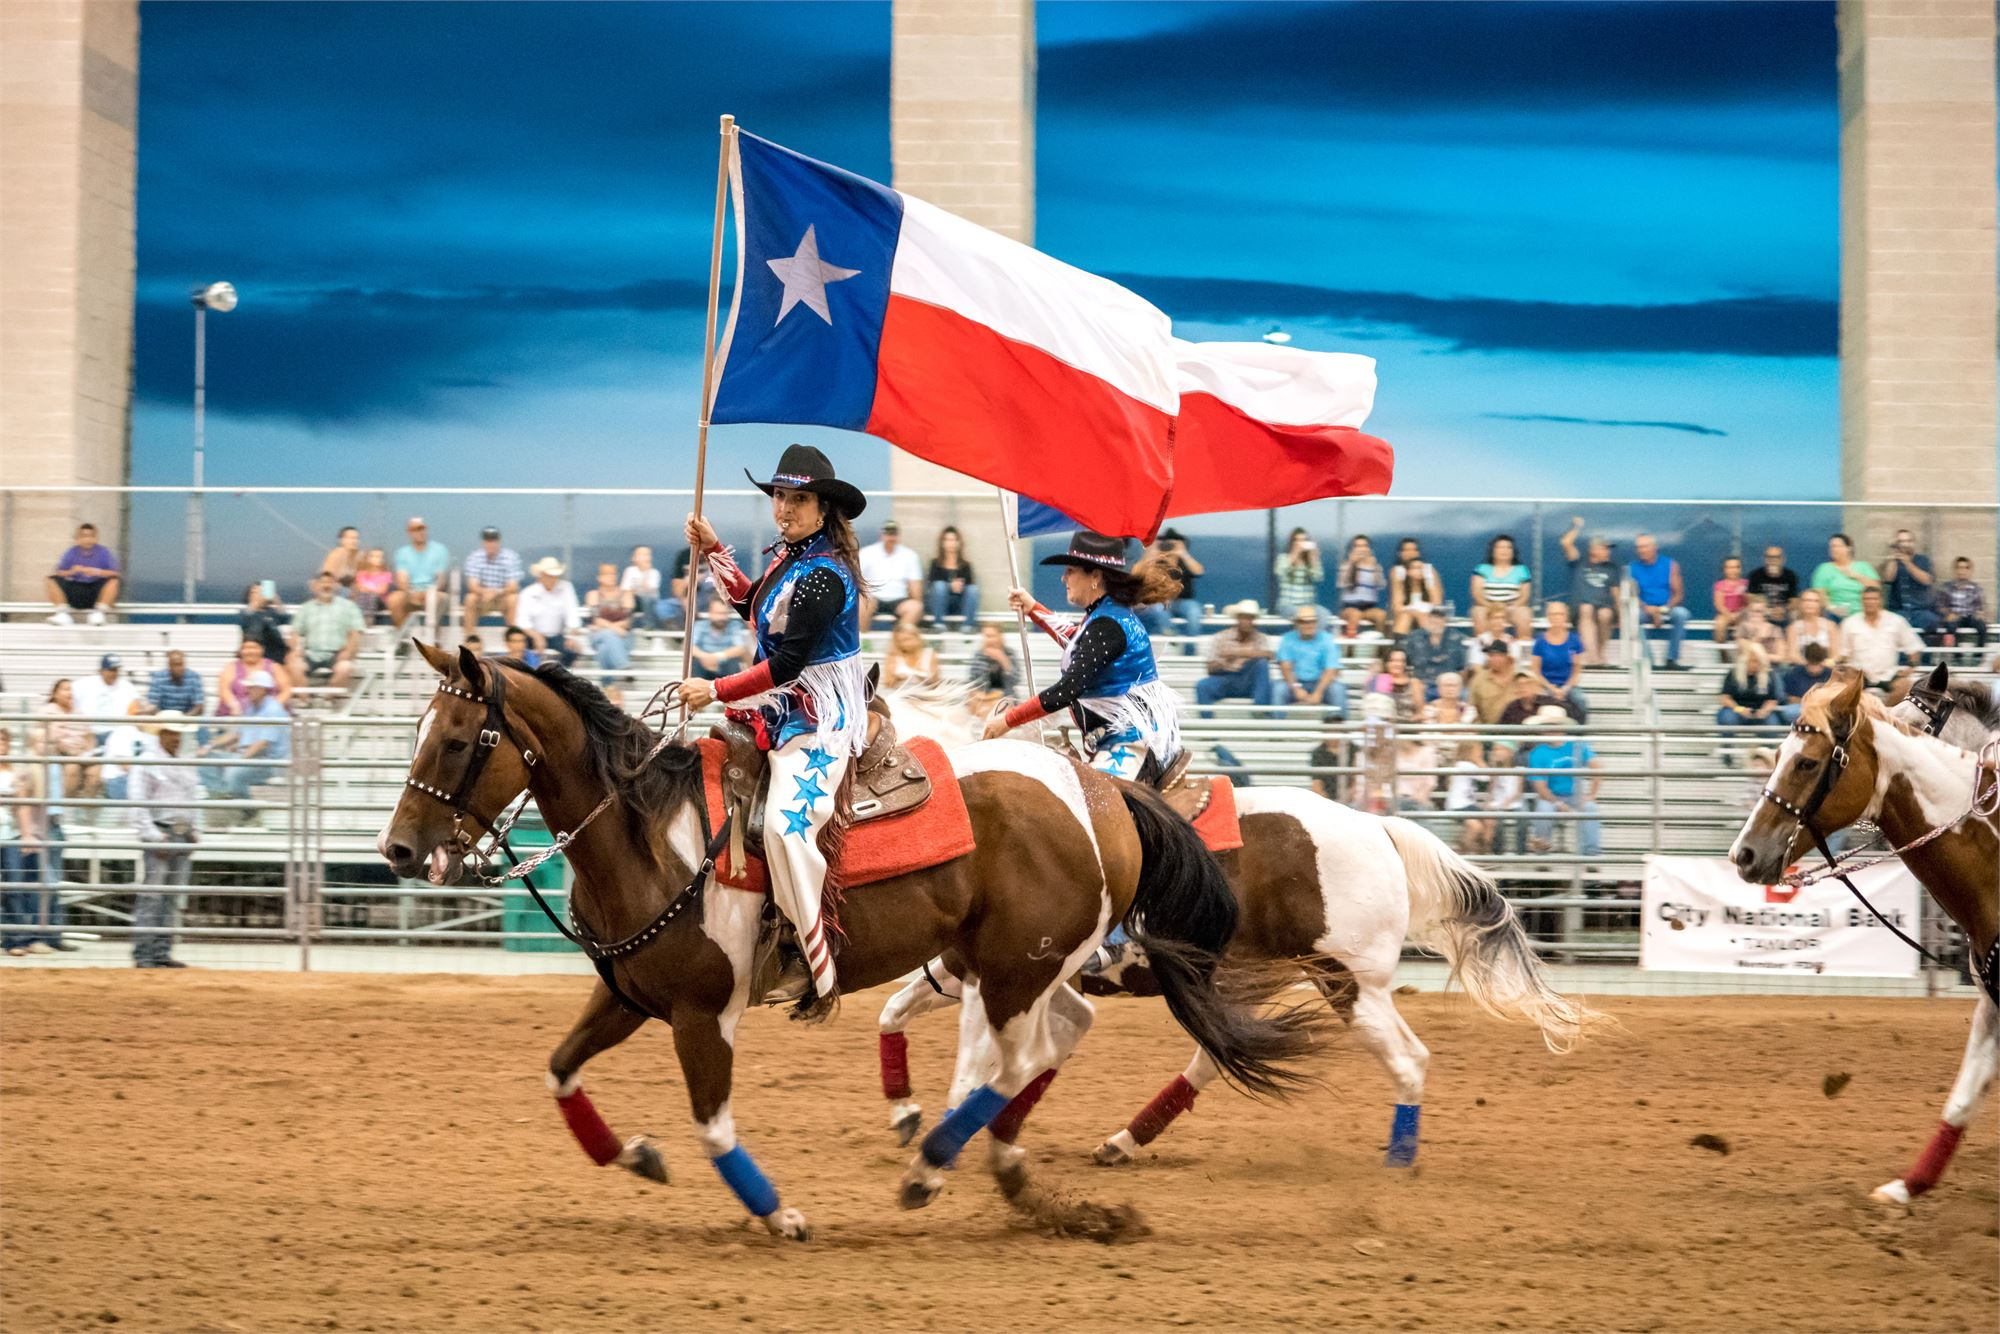 Cowgirls riding through the arena with Texas Flag